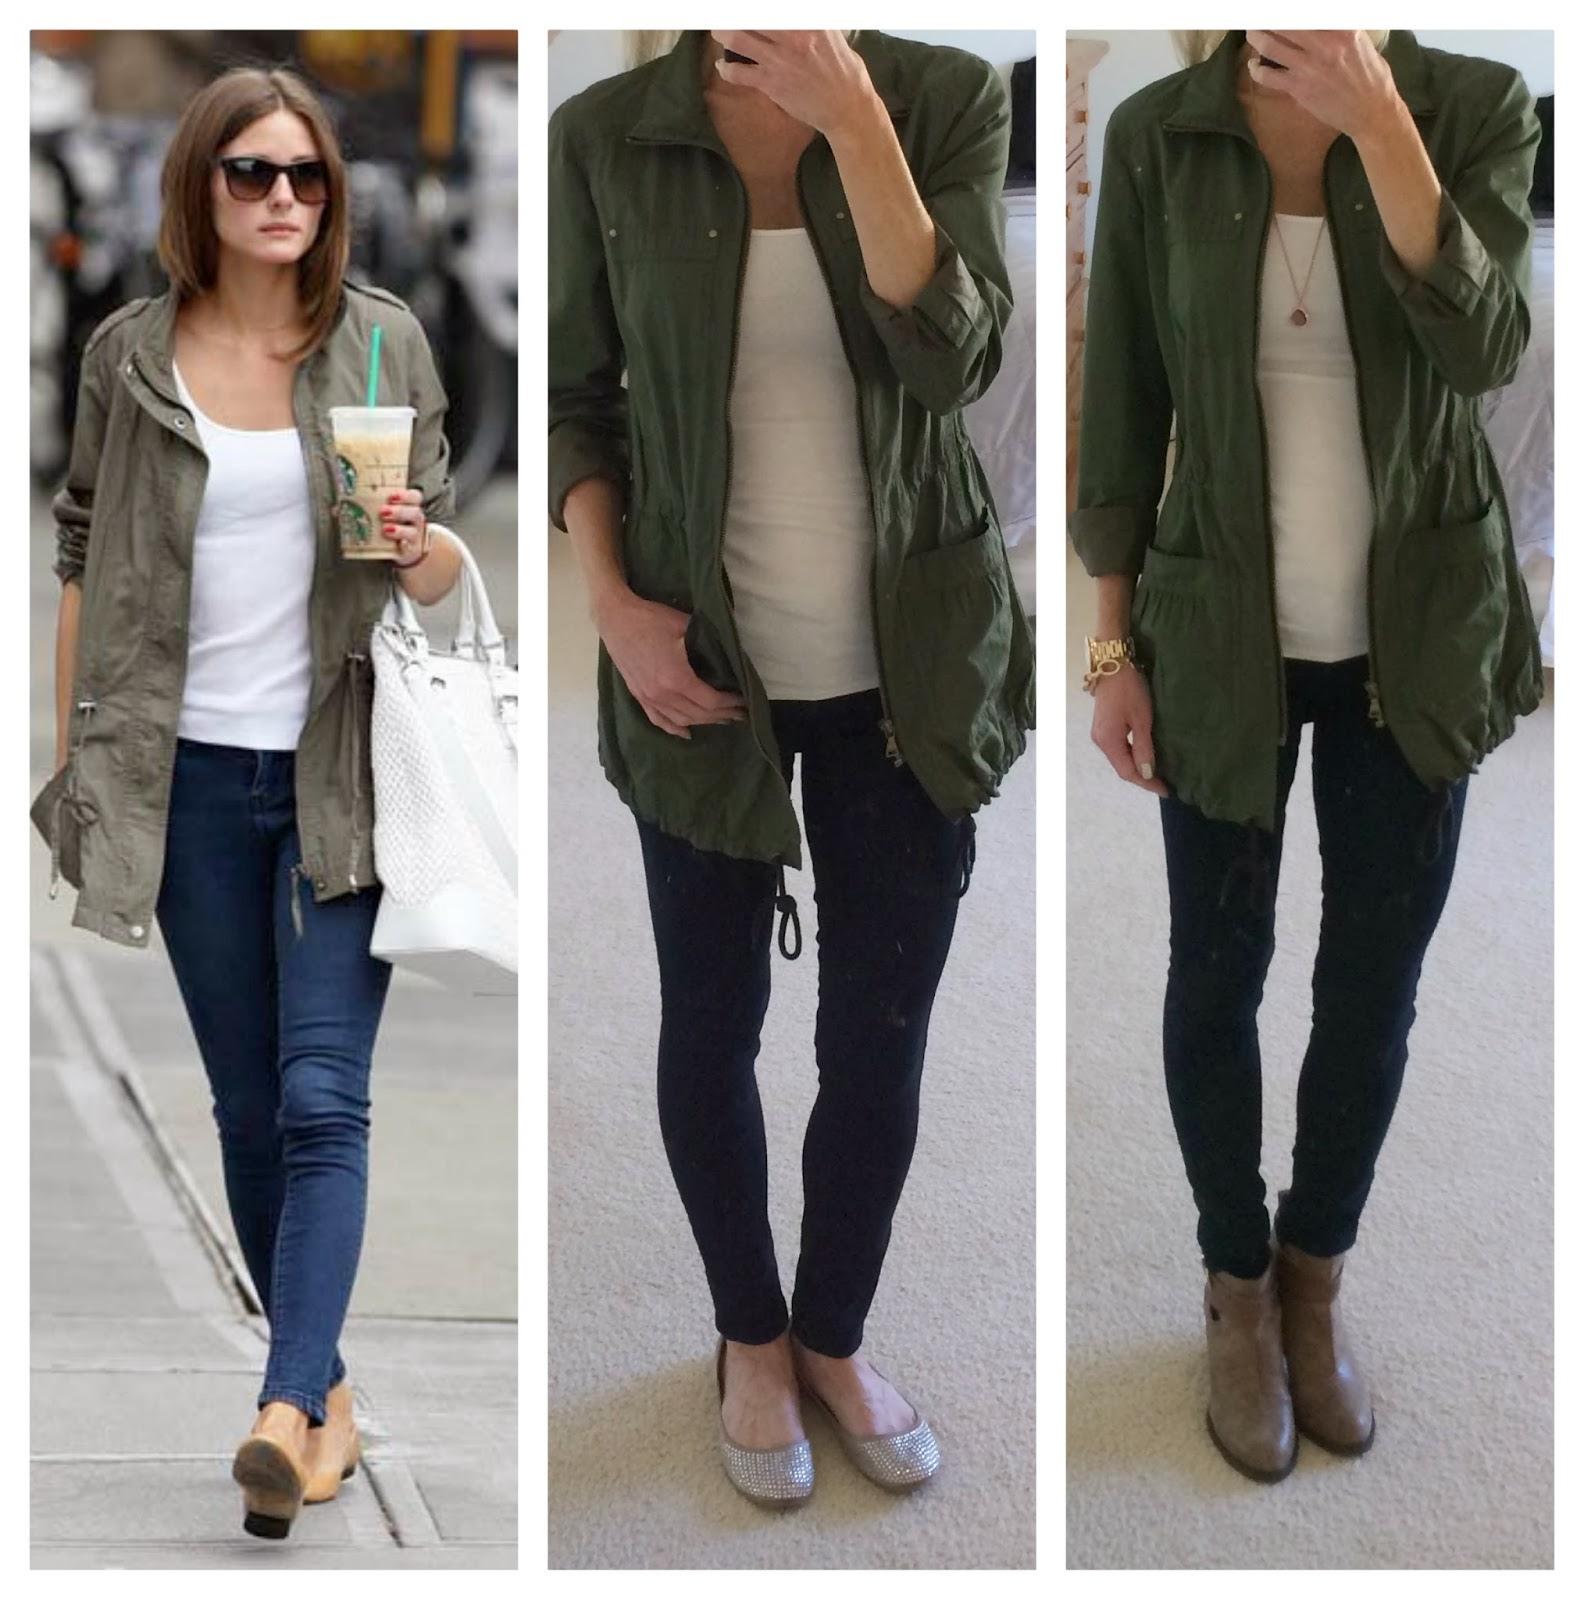 military jacket, express cotton anorak jacket, olive jacket, olivia palermo style, duplicate outfit, copycat outfit